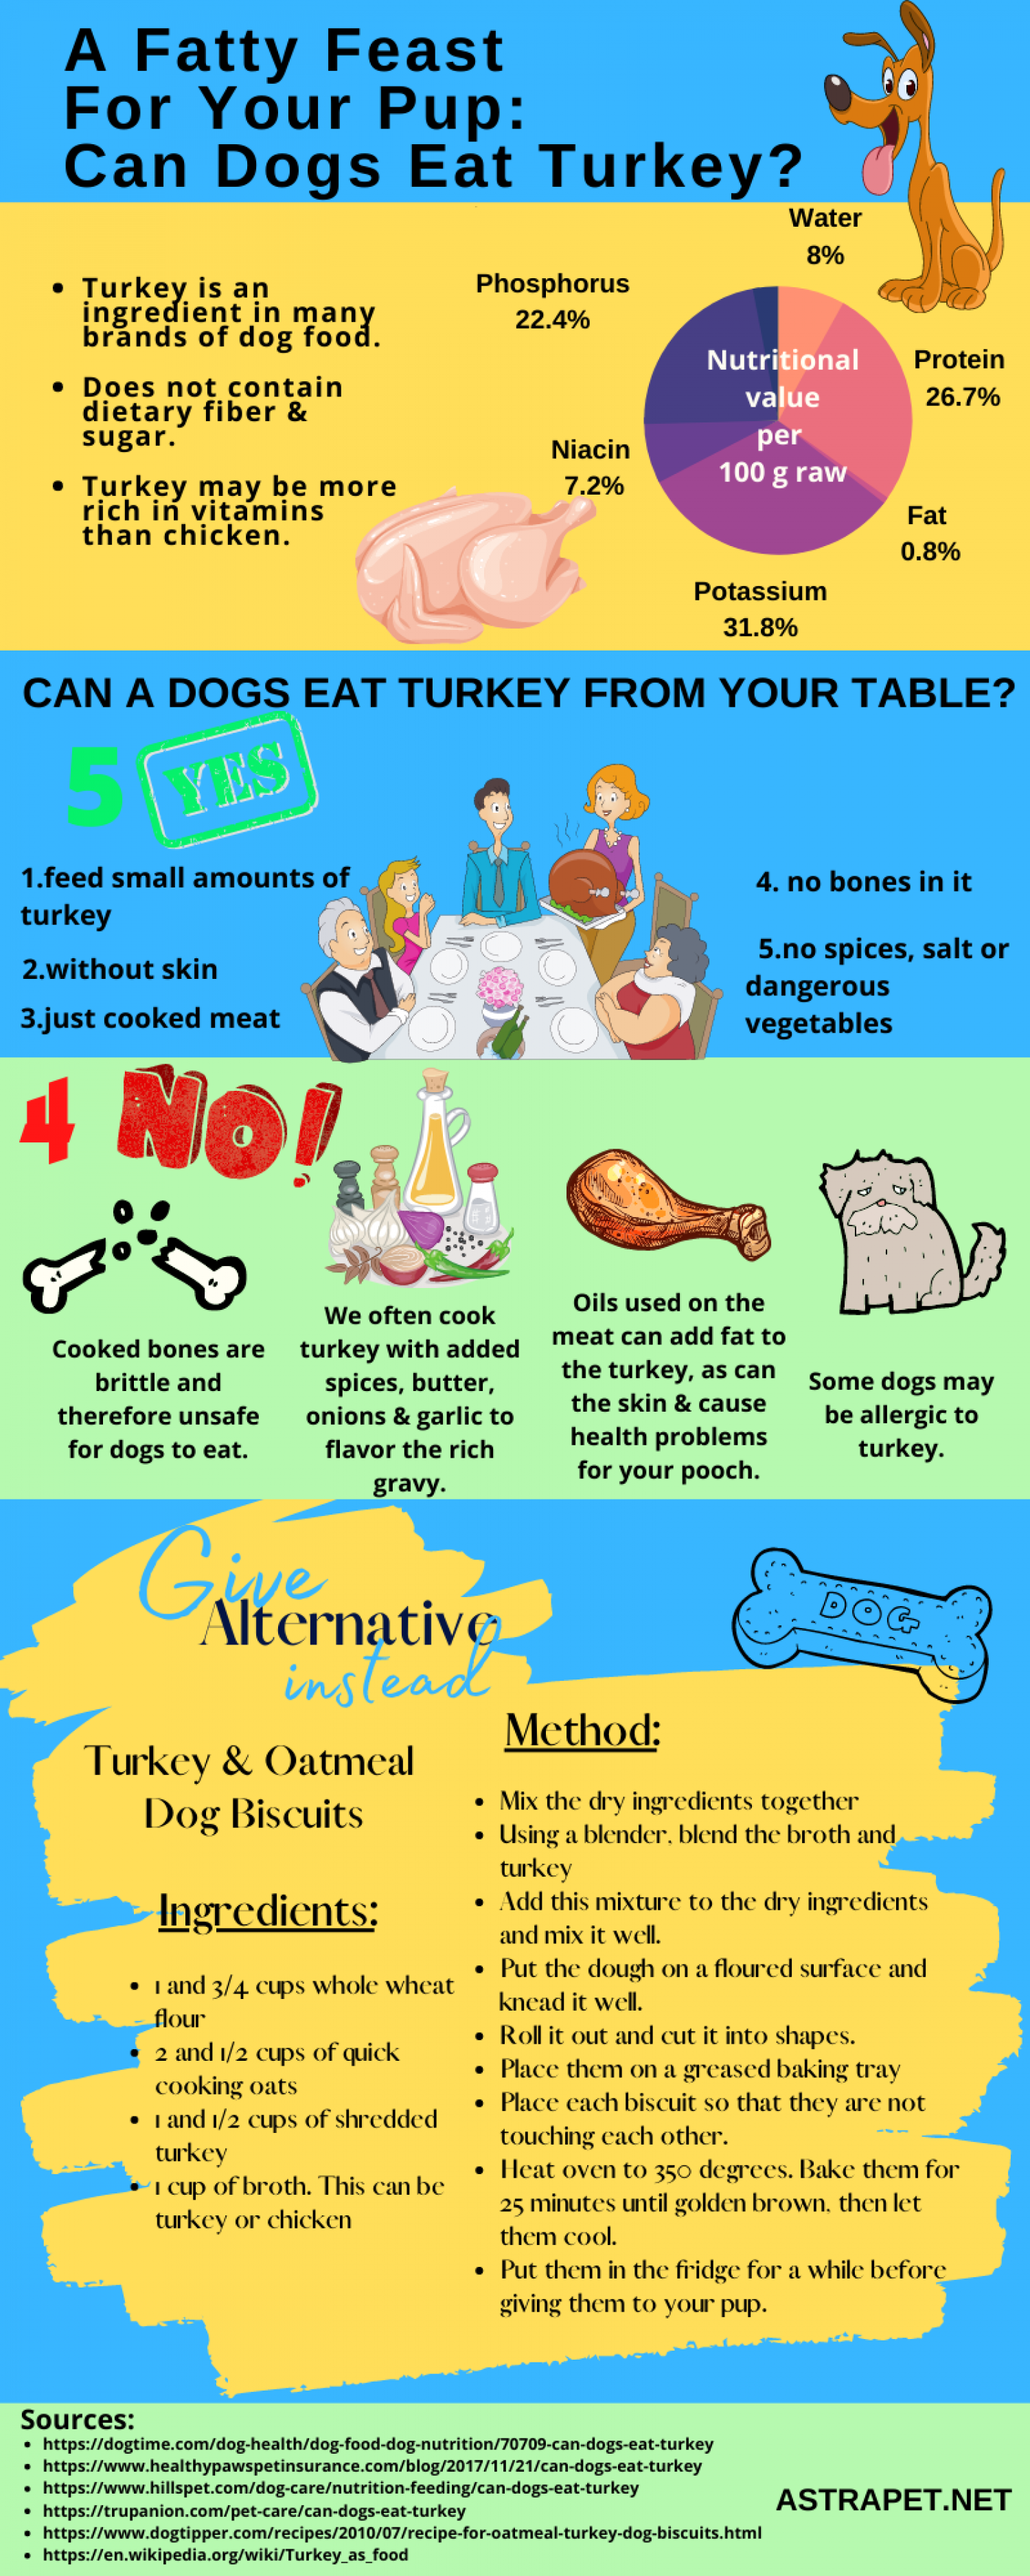 Can Dogs Eat Turkey? Infographic